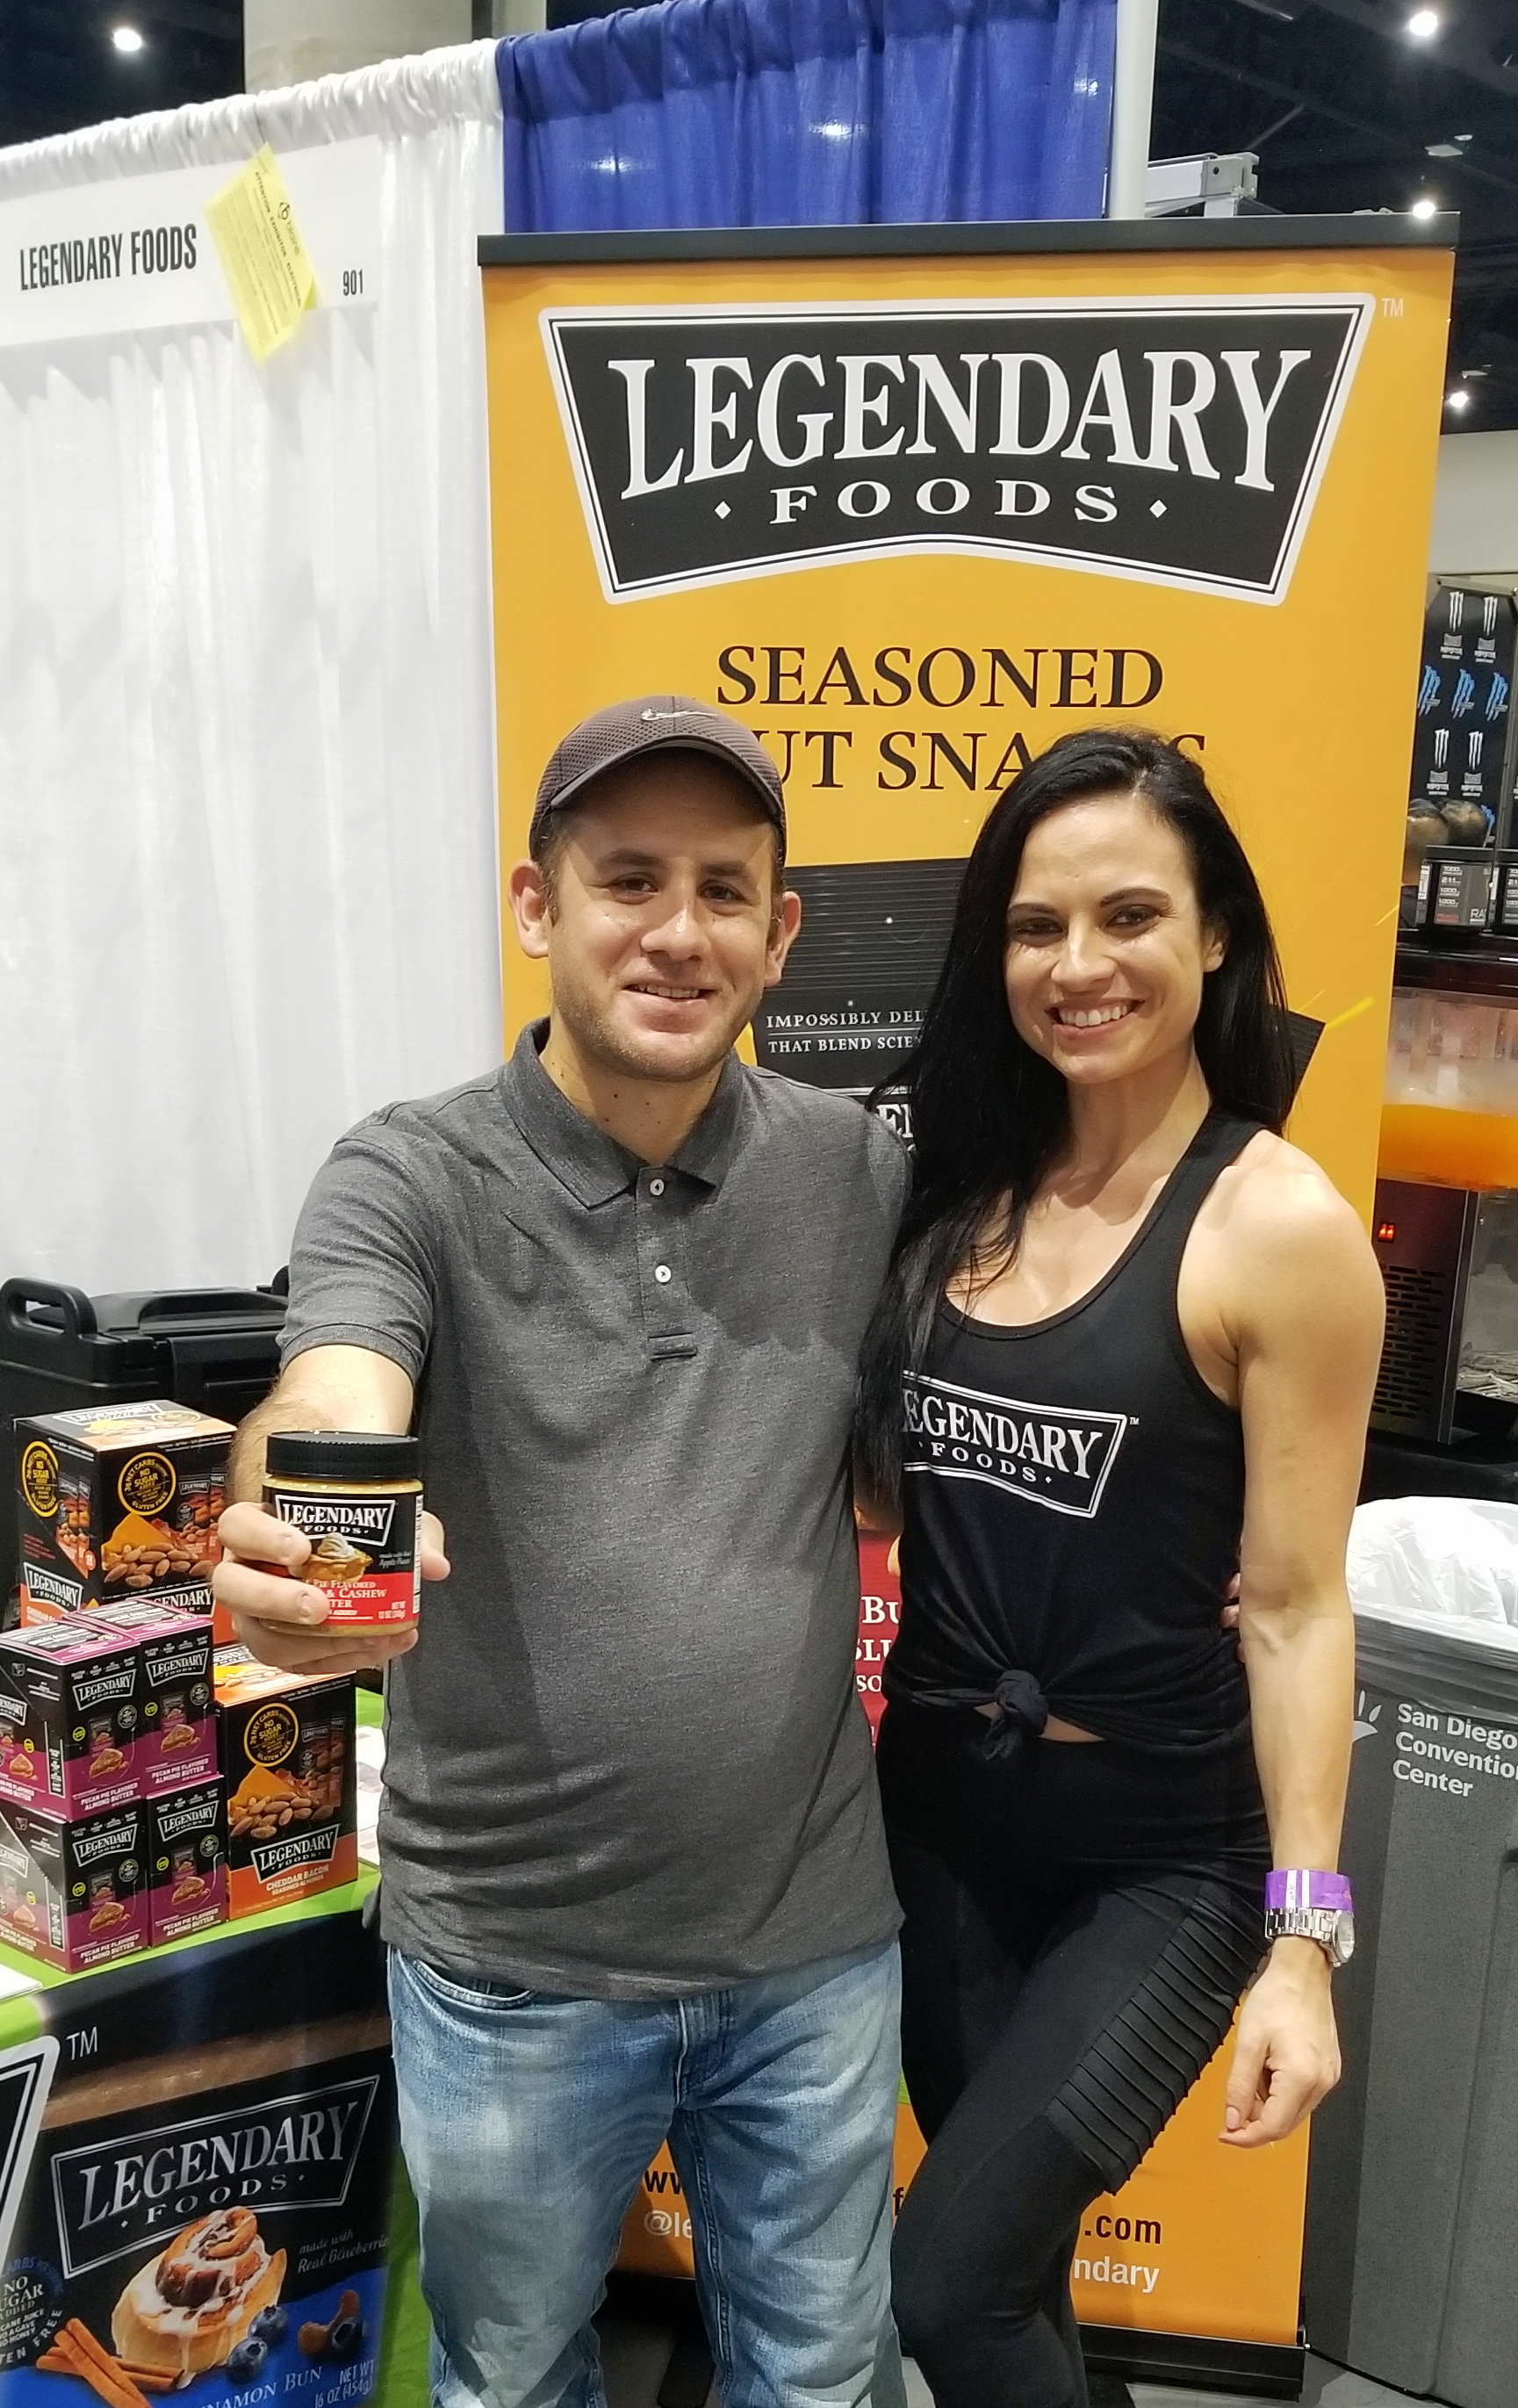 At the Legendary Foods booth and @ VictoriaFit _ from Instagram at the San Diego Fit Expo where I got a complimentary Butter. Thank you.